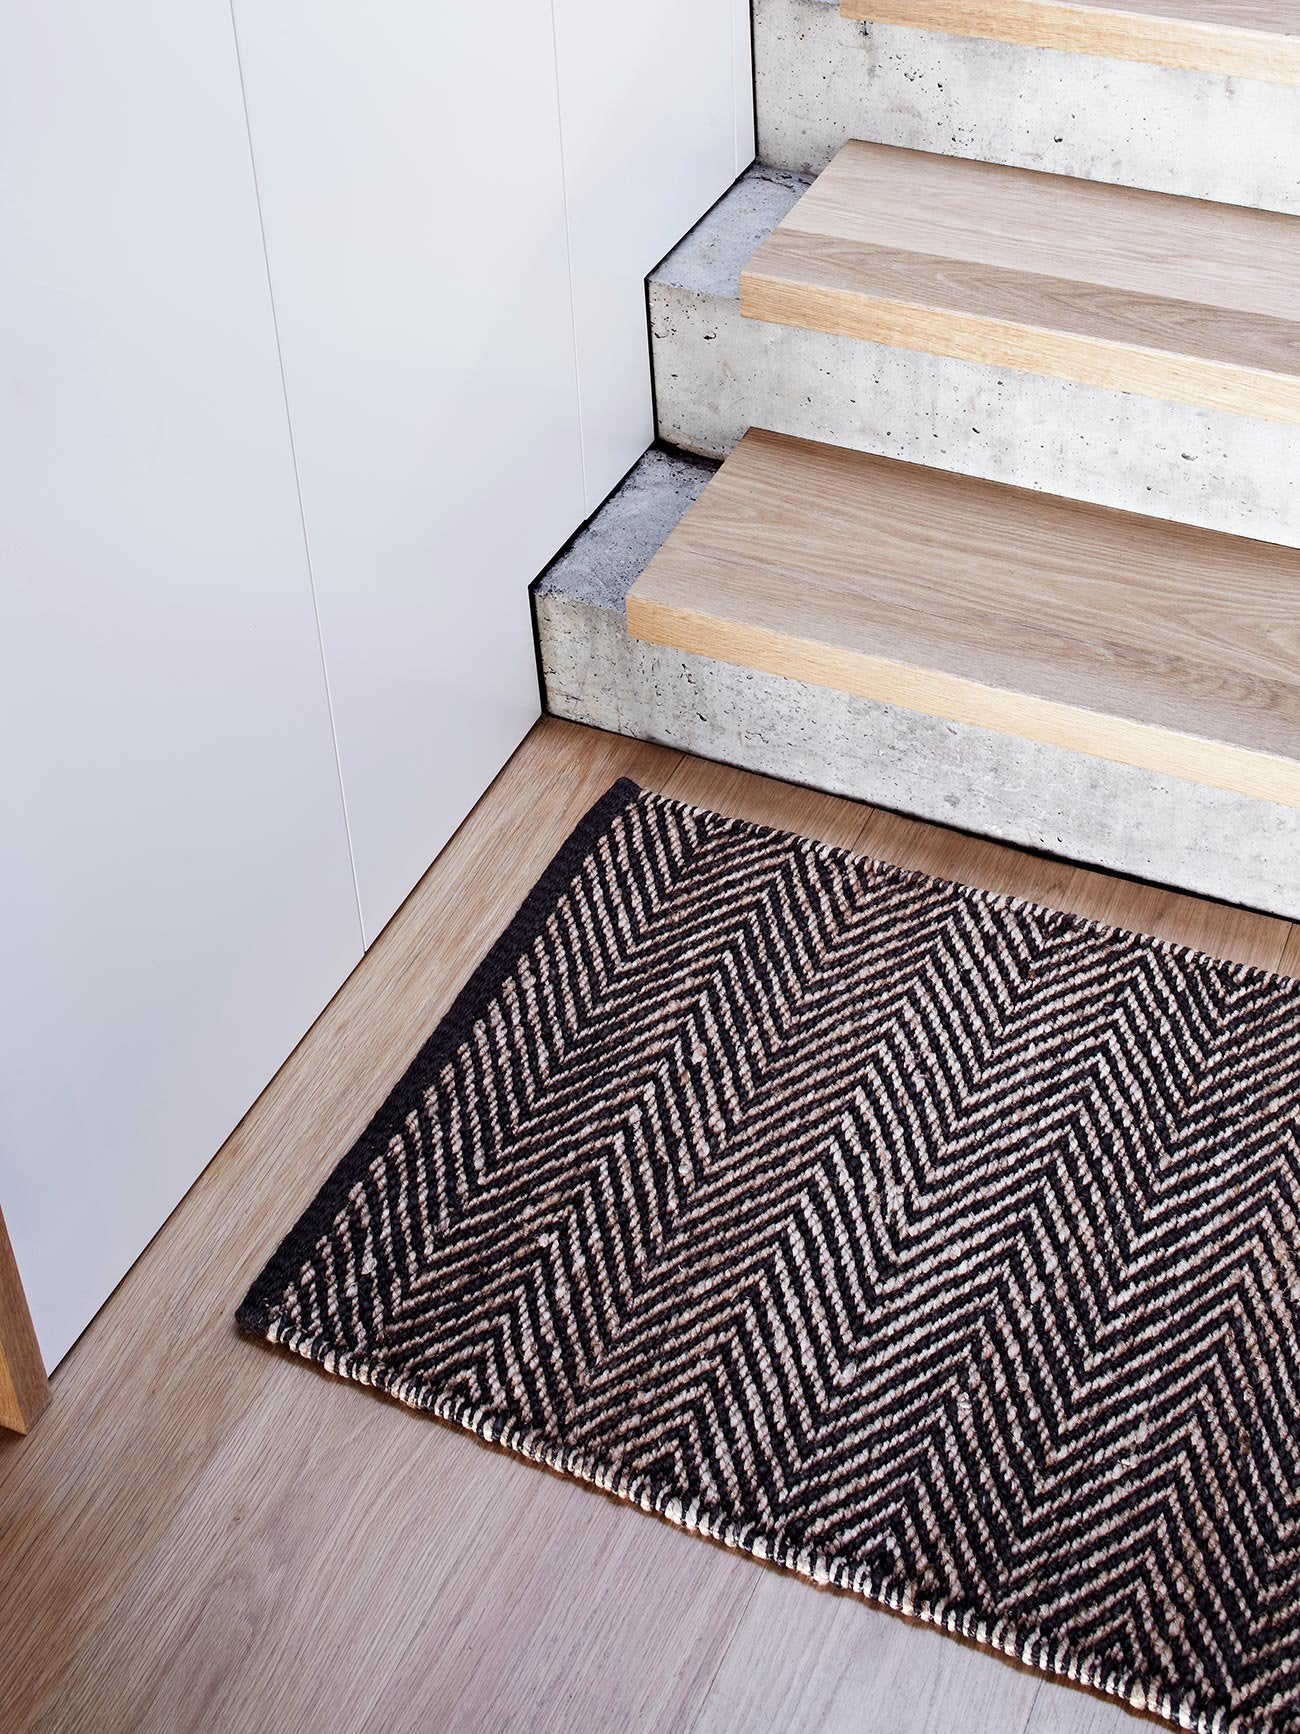 Armadillo & Co Serengeti Entrance Mat - Charcoal & Natural